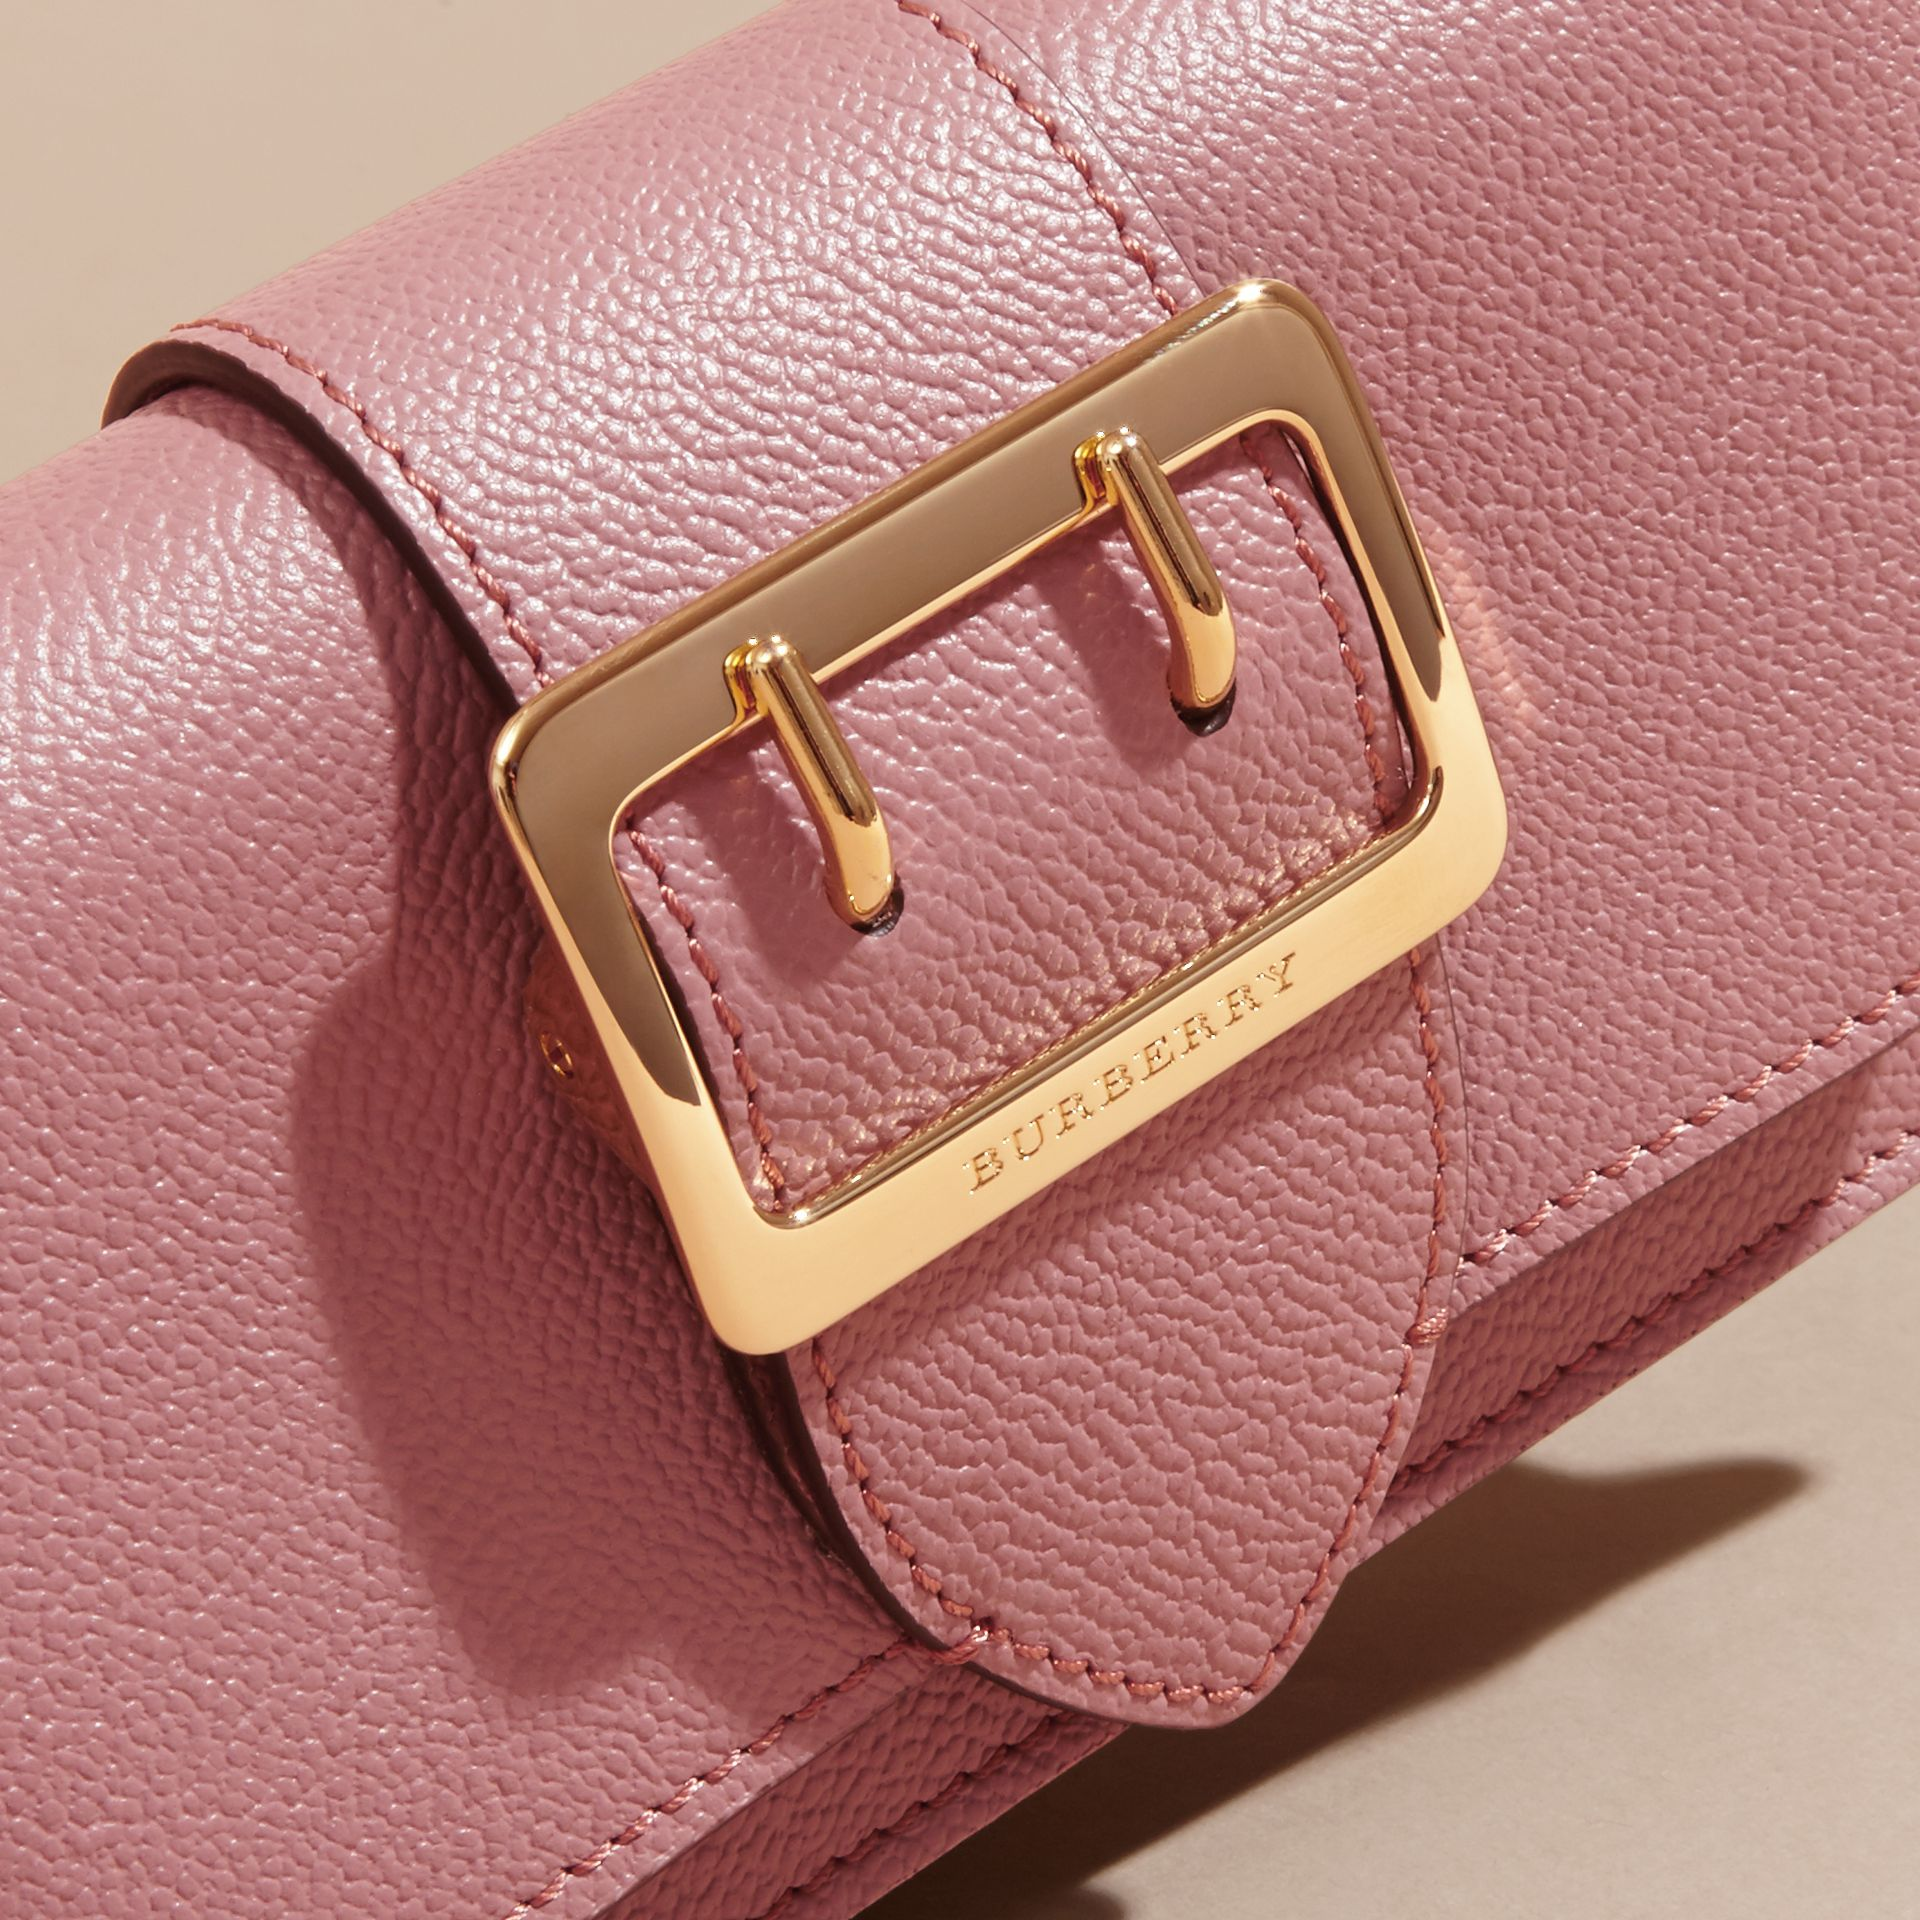 The Mini Buckle Bag in Grainy Leather in Dusty Pink - Women | Burberry - gallery image 2